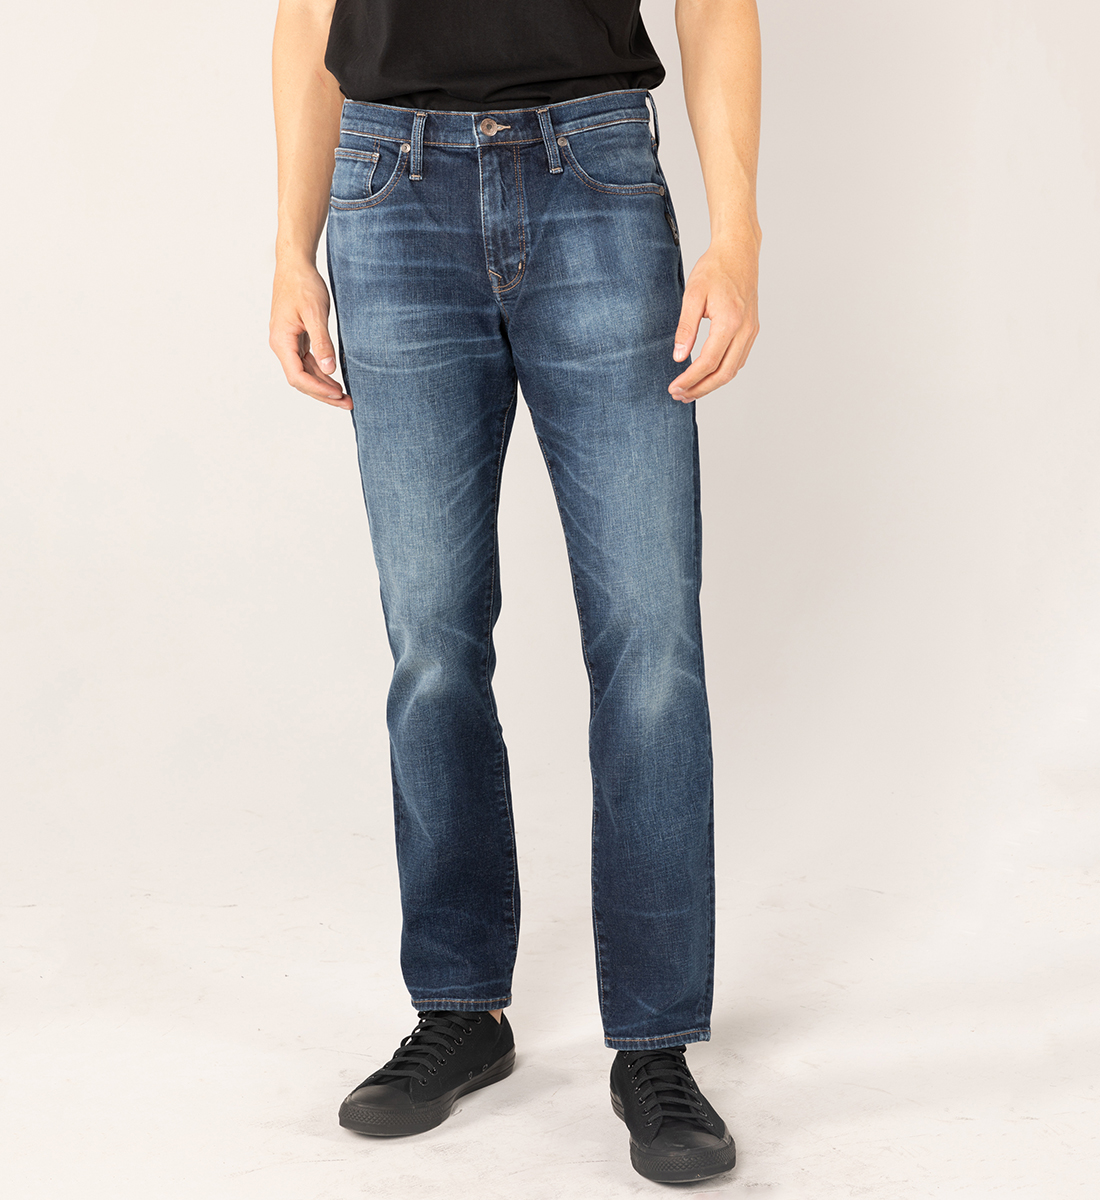 MACHRAY CLASSIC FIT STRAIGHT LEG JEANS Big & Tall Front